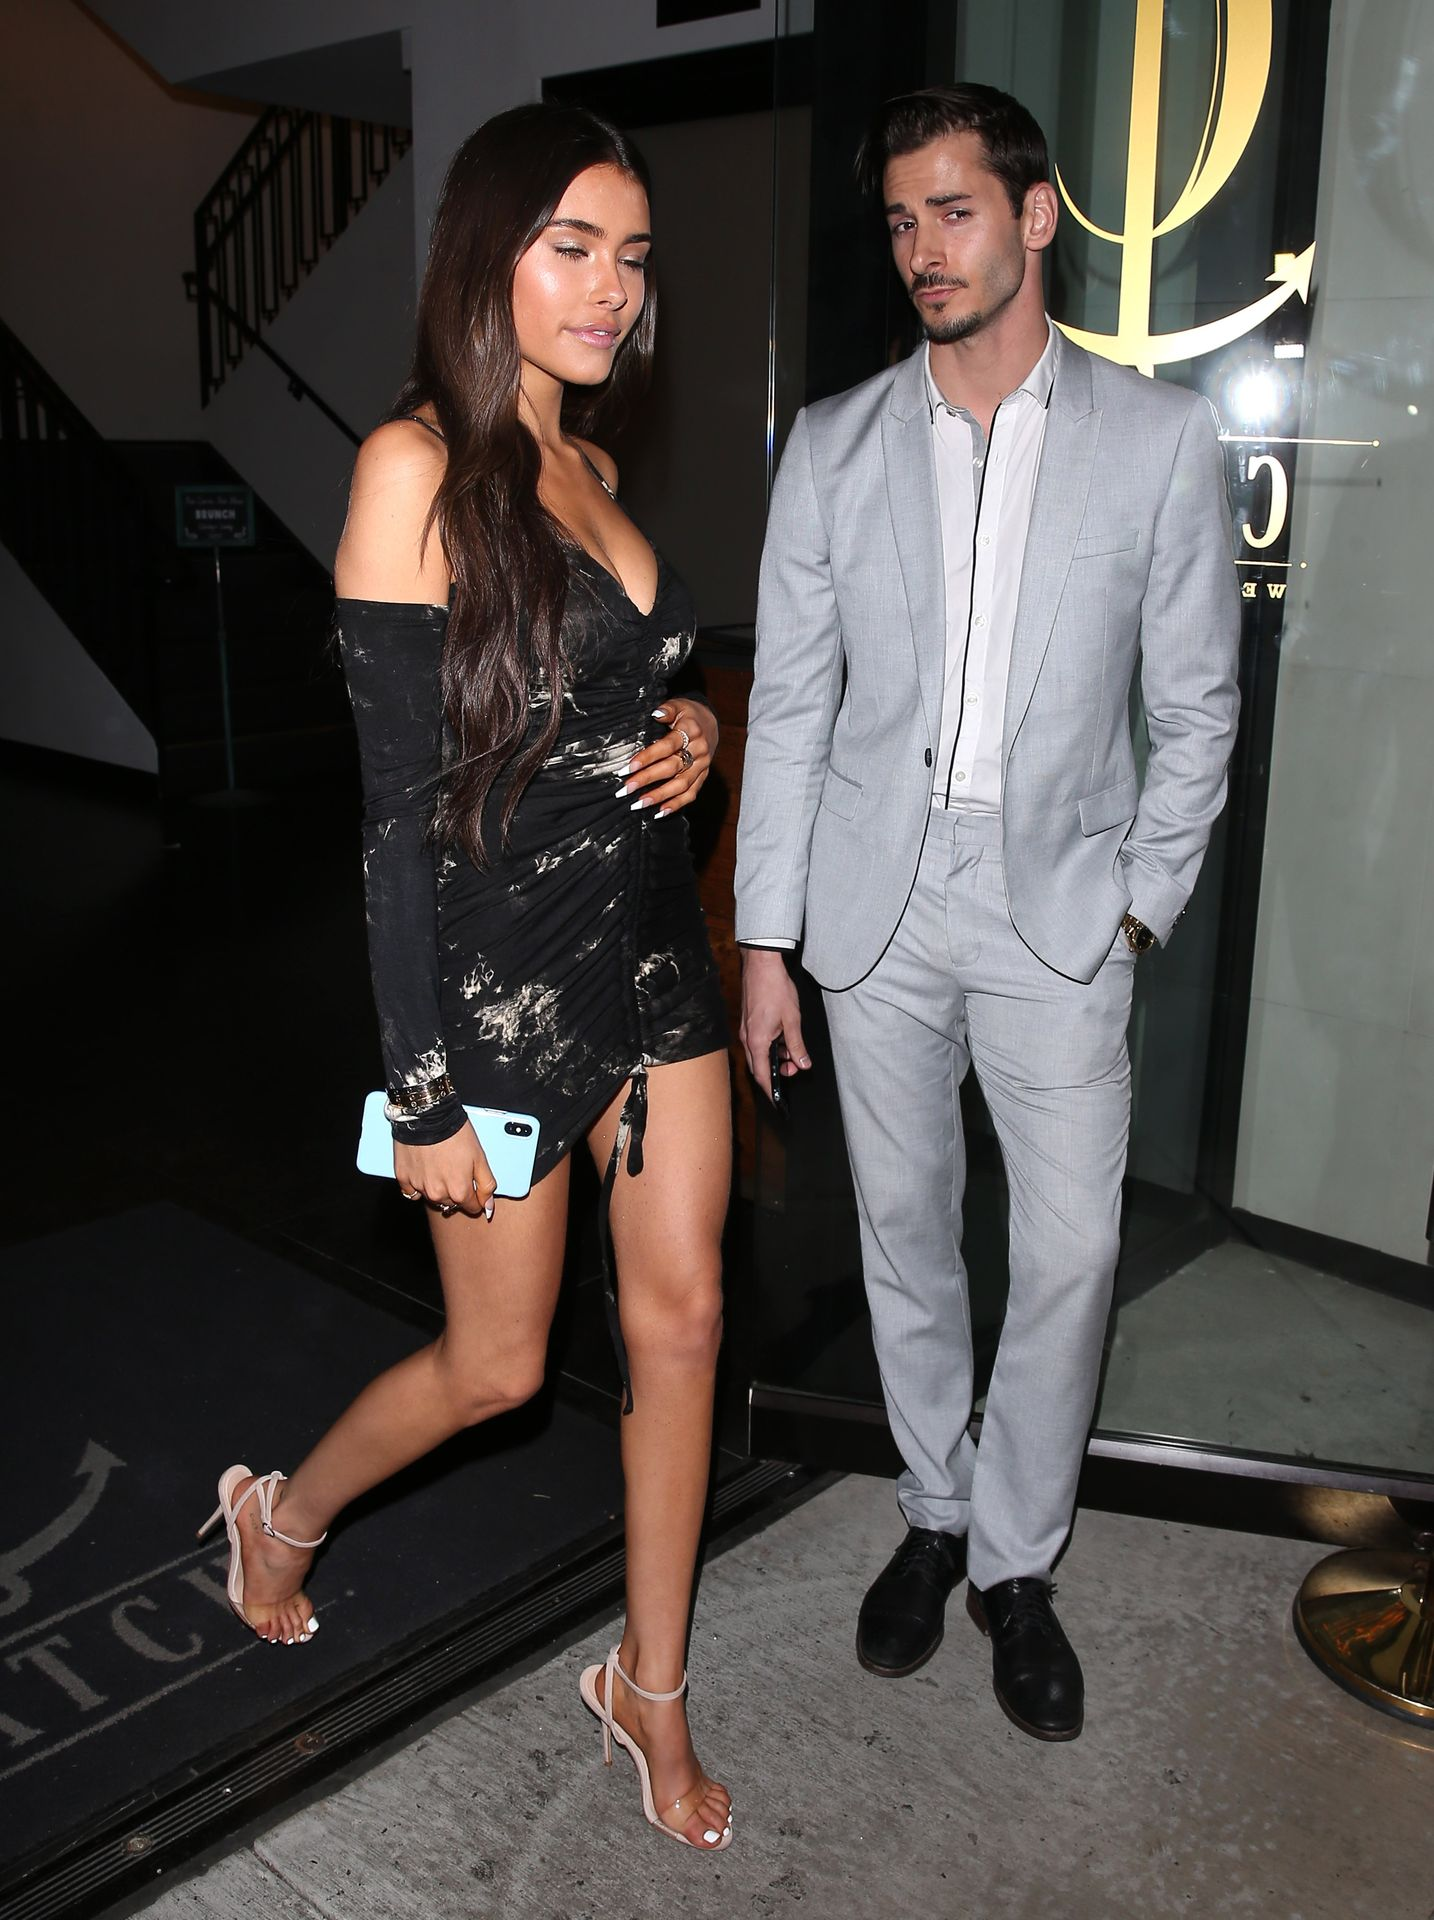 Madison Beer Stuns In Black At Catch La 0073